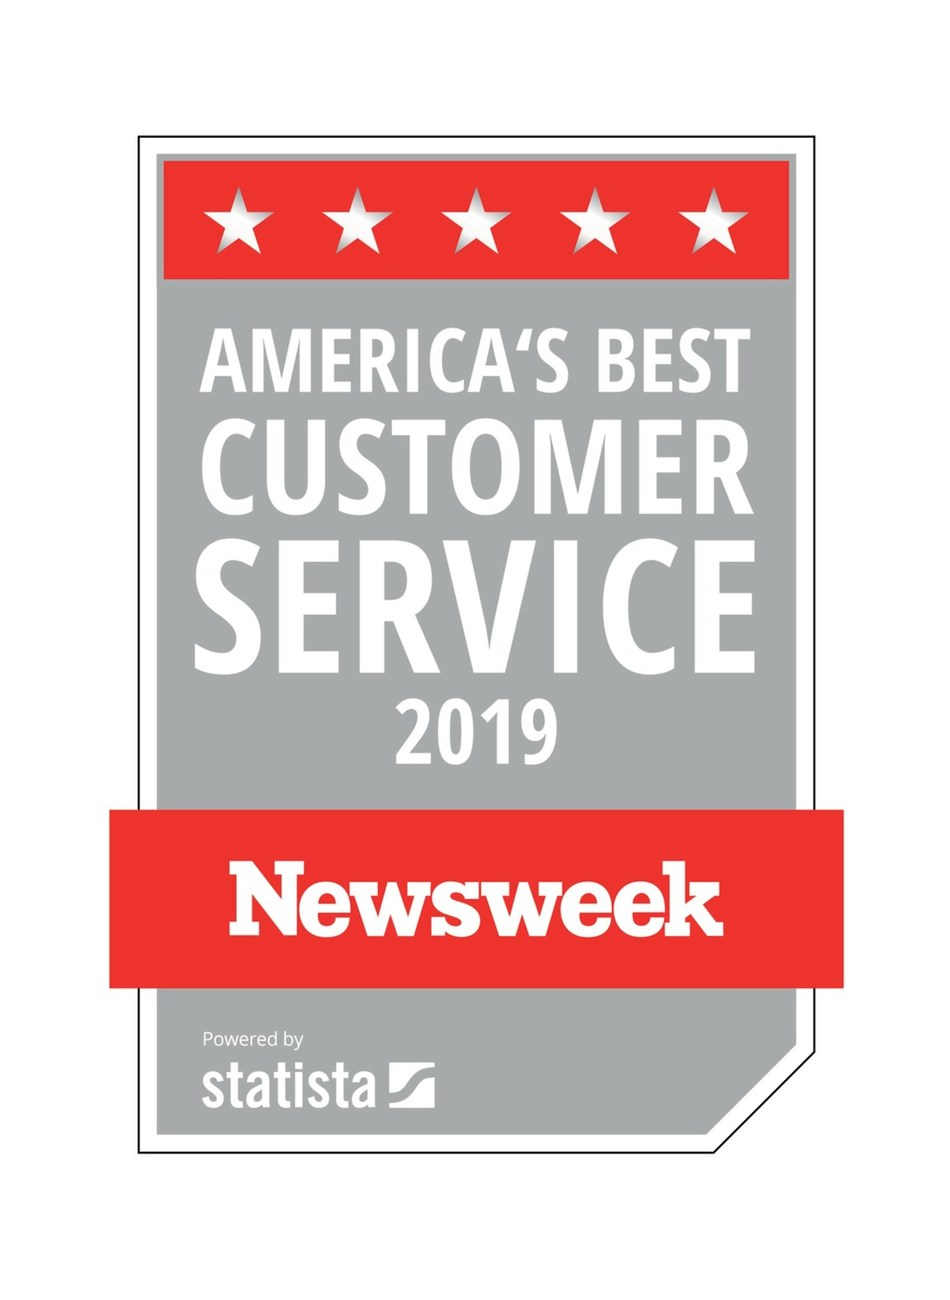 Newsweek selected J&P Cycles, the world's largest multichannel retailer of aftermarket motorcycle parts and accessories, as one of the best customer service organizations in the U.S. and placed the company on its inaugural list for America's Best Customer Service 2019. According to Newsweek, J&P Cycles leads the motorcycle industry and ranks first in the Motorcycle Parts & Accessories Online category.